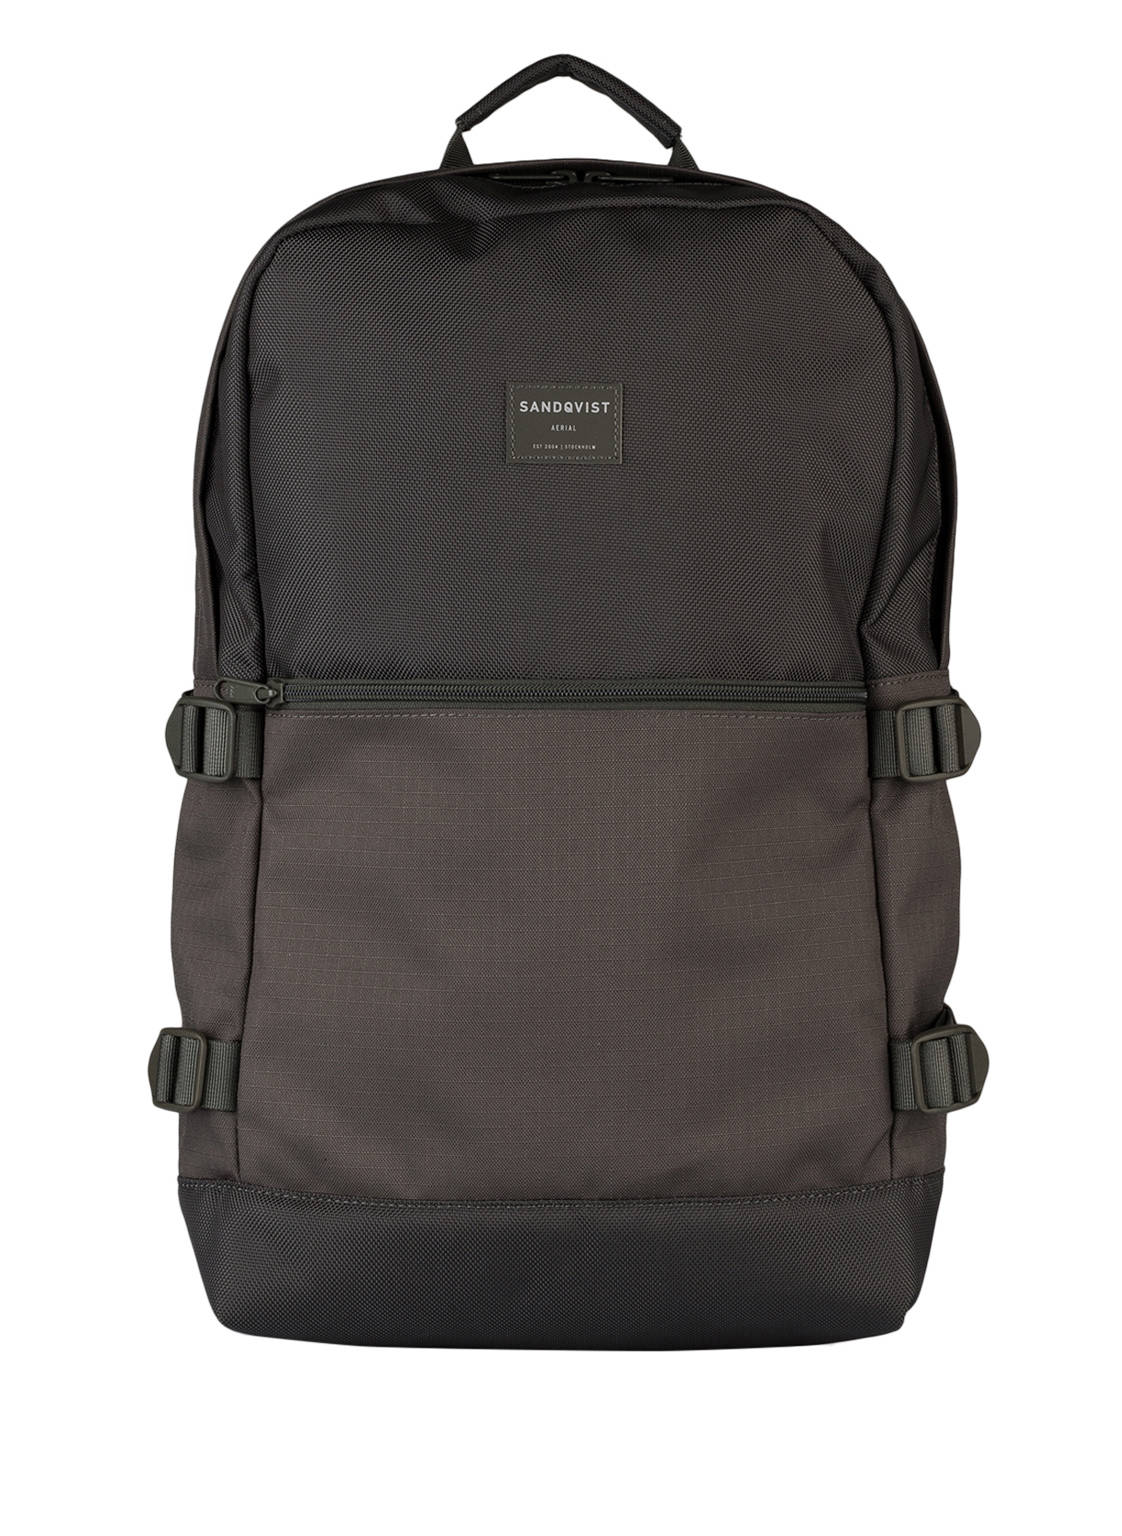 dermata laptoprucksack auf rollen 15 zoll nylon blau. Black Bedroom Furniture Sets. Home Design Ideas